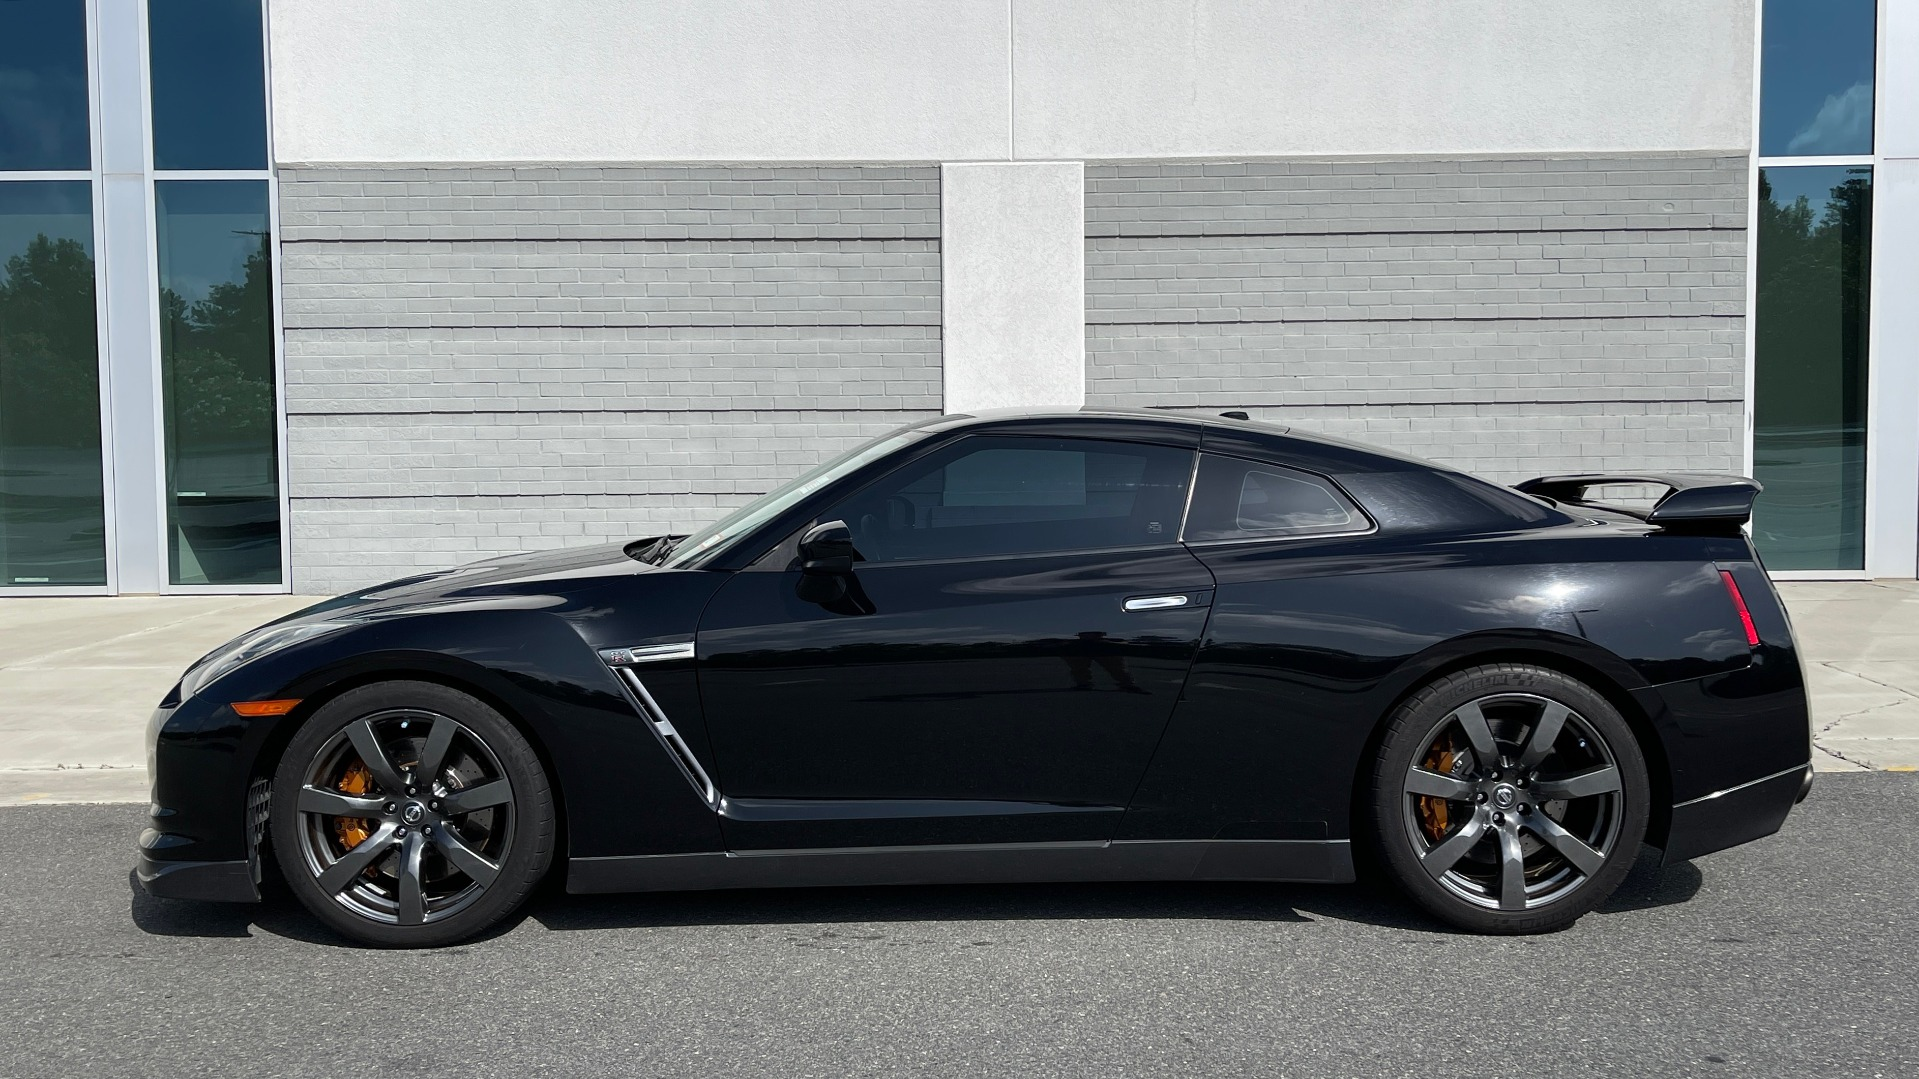 Used 2009 Nissan GT-R PREMIUM COUPE / AWD / TT 3.8L V6 / NAV / BOSE / BREMBO for sale $57,995 at Formula Imports in Charlotte NC 28227 3